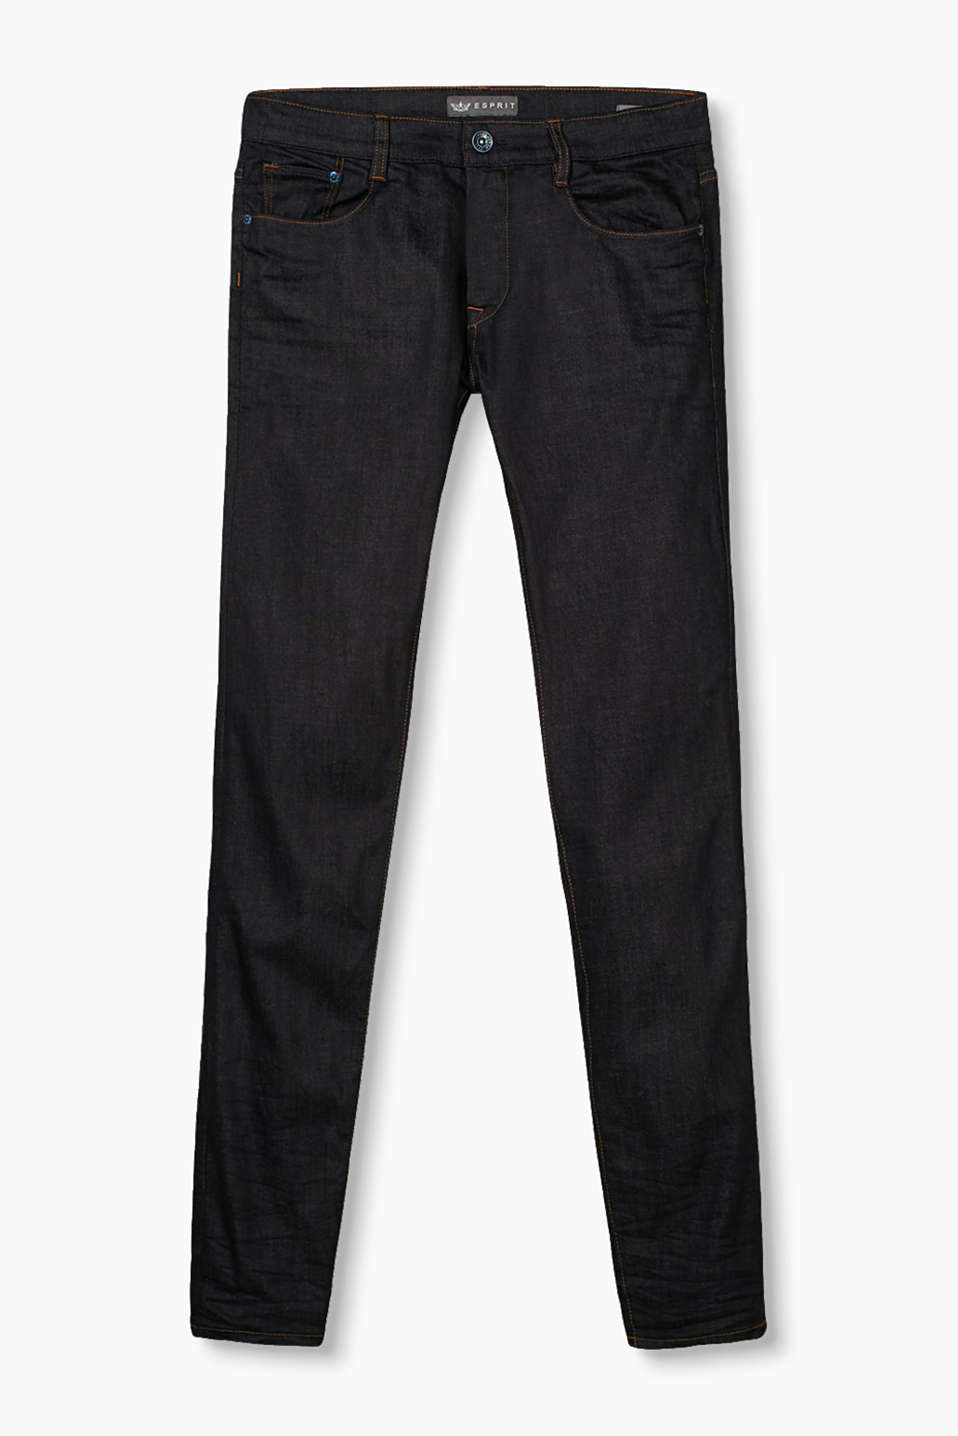 Five-pocket jeans with a dark rinse wash with subtle garment-washed effects, in firm stretch denim